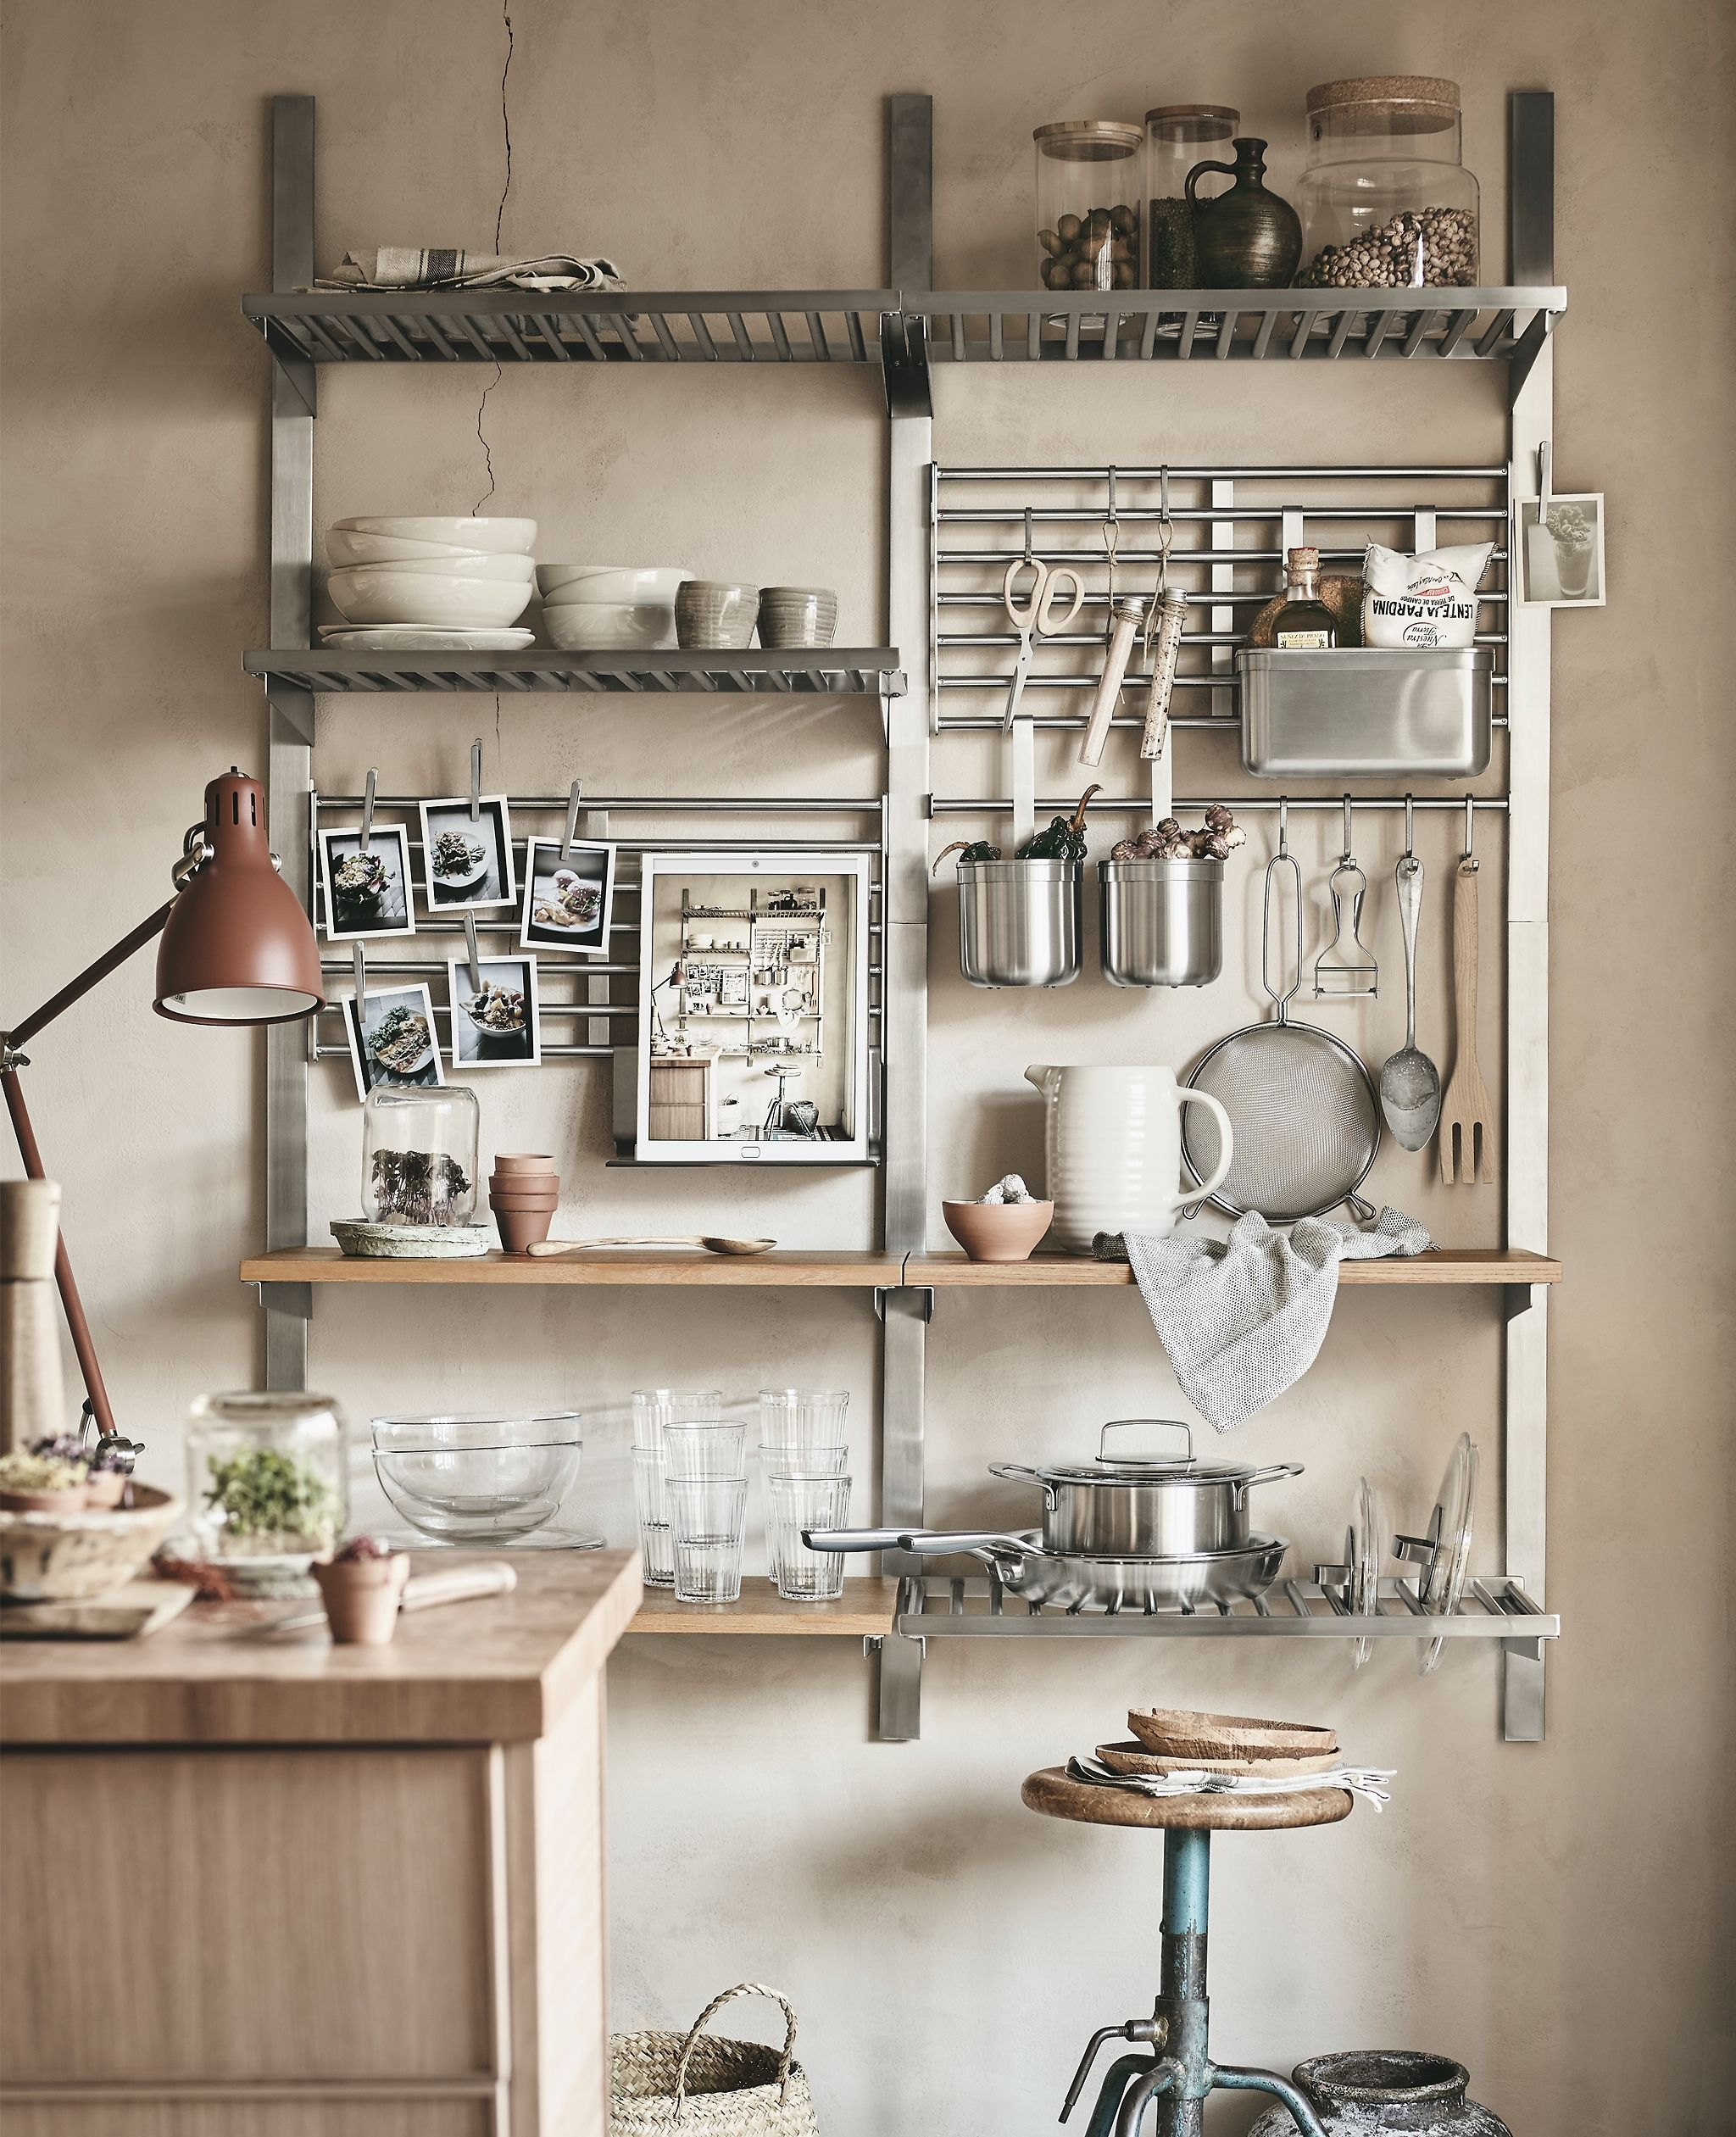 Introducing kungsfors a new kitchen storage system ikea storage in 2019 ikea kitchen - Ikea rangement cuisine ...